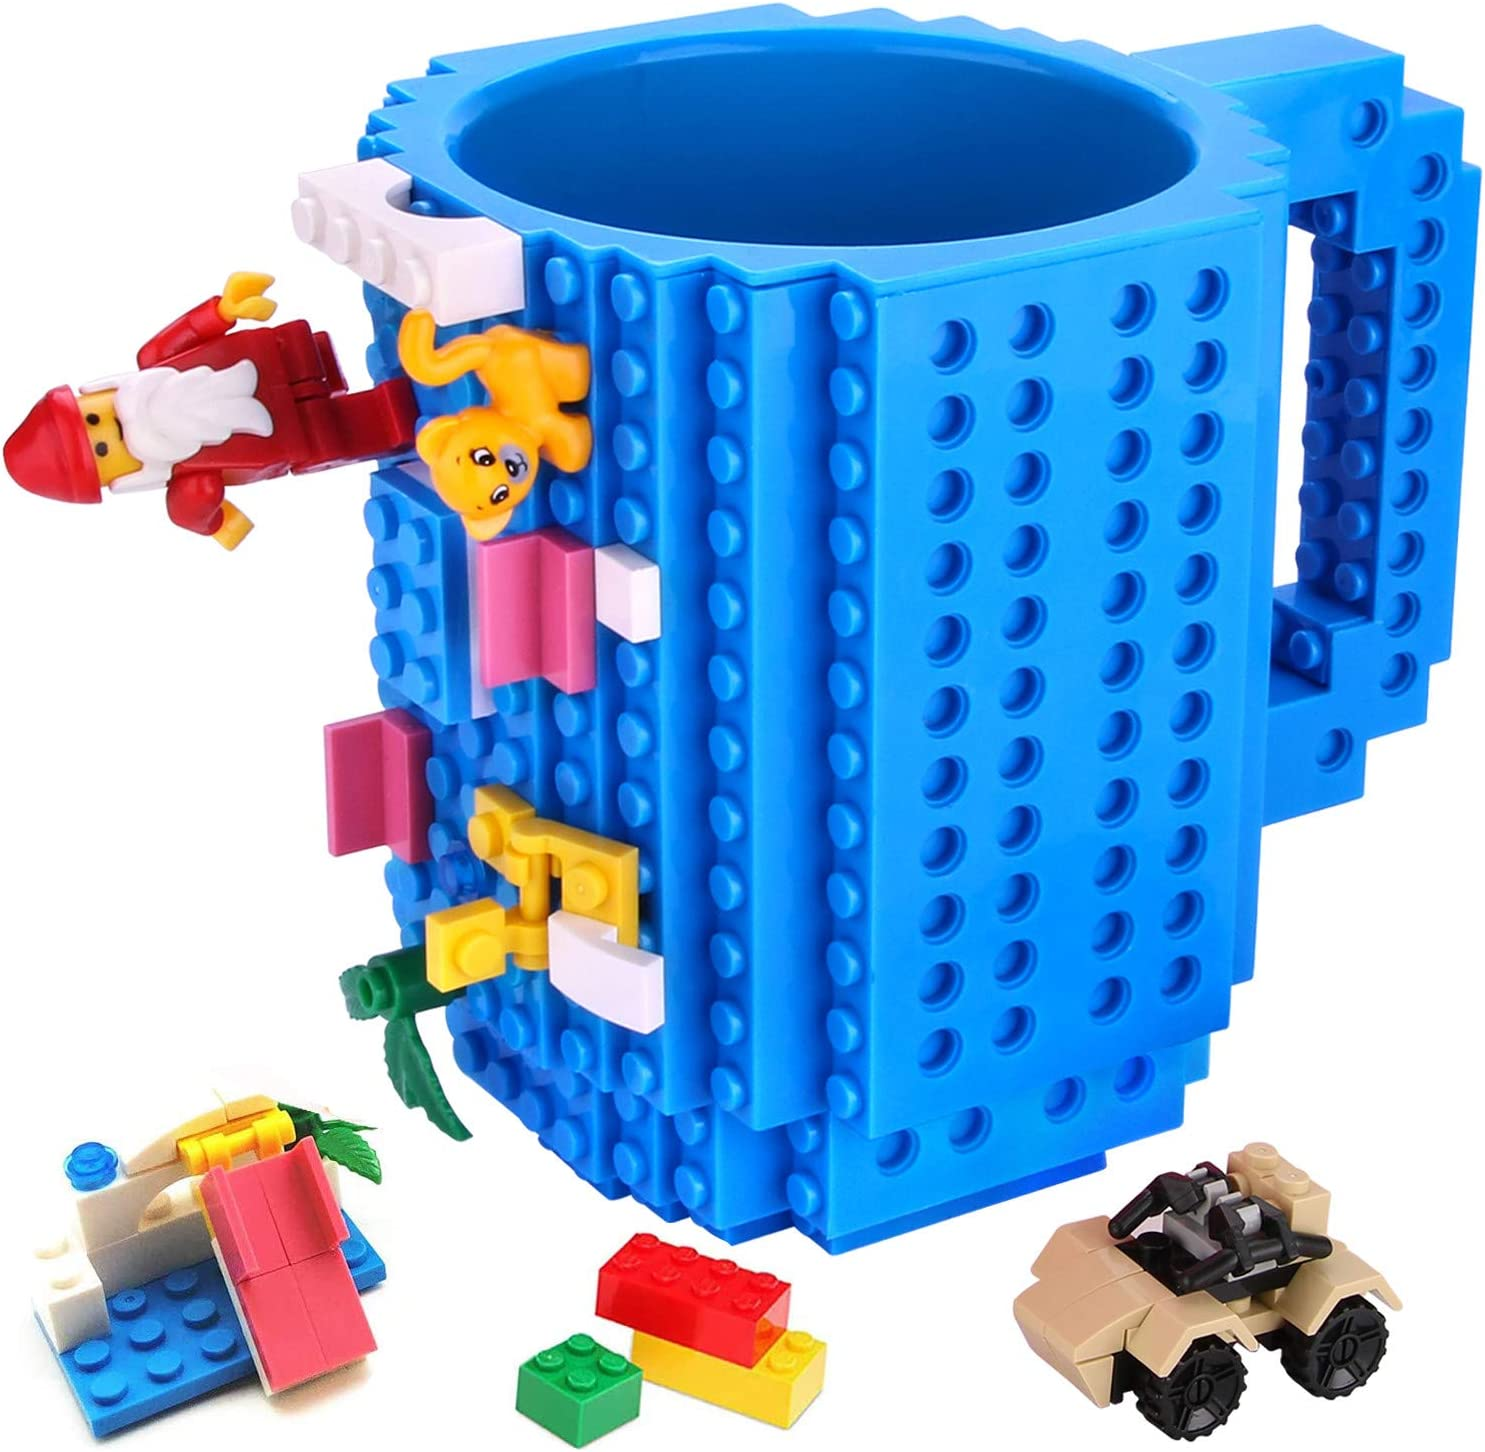 Build-on Brick Mug,Novelty Creative Compatible with Lego DIY Building Blocks Coffee Cup,Fun Mugs,Unique Puzzle Mug,with 3 Packs of Bricks,Beverage Pen Cup for Kids/Office By Sinnsally(Blue)